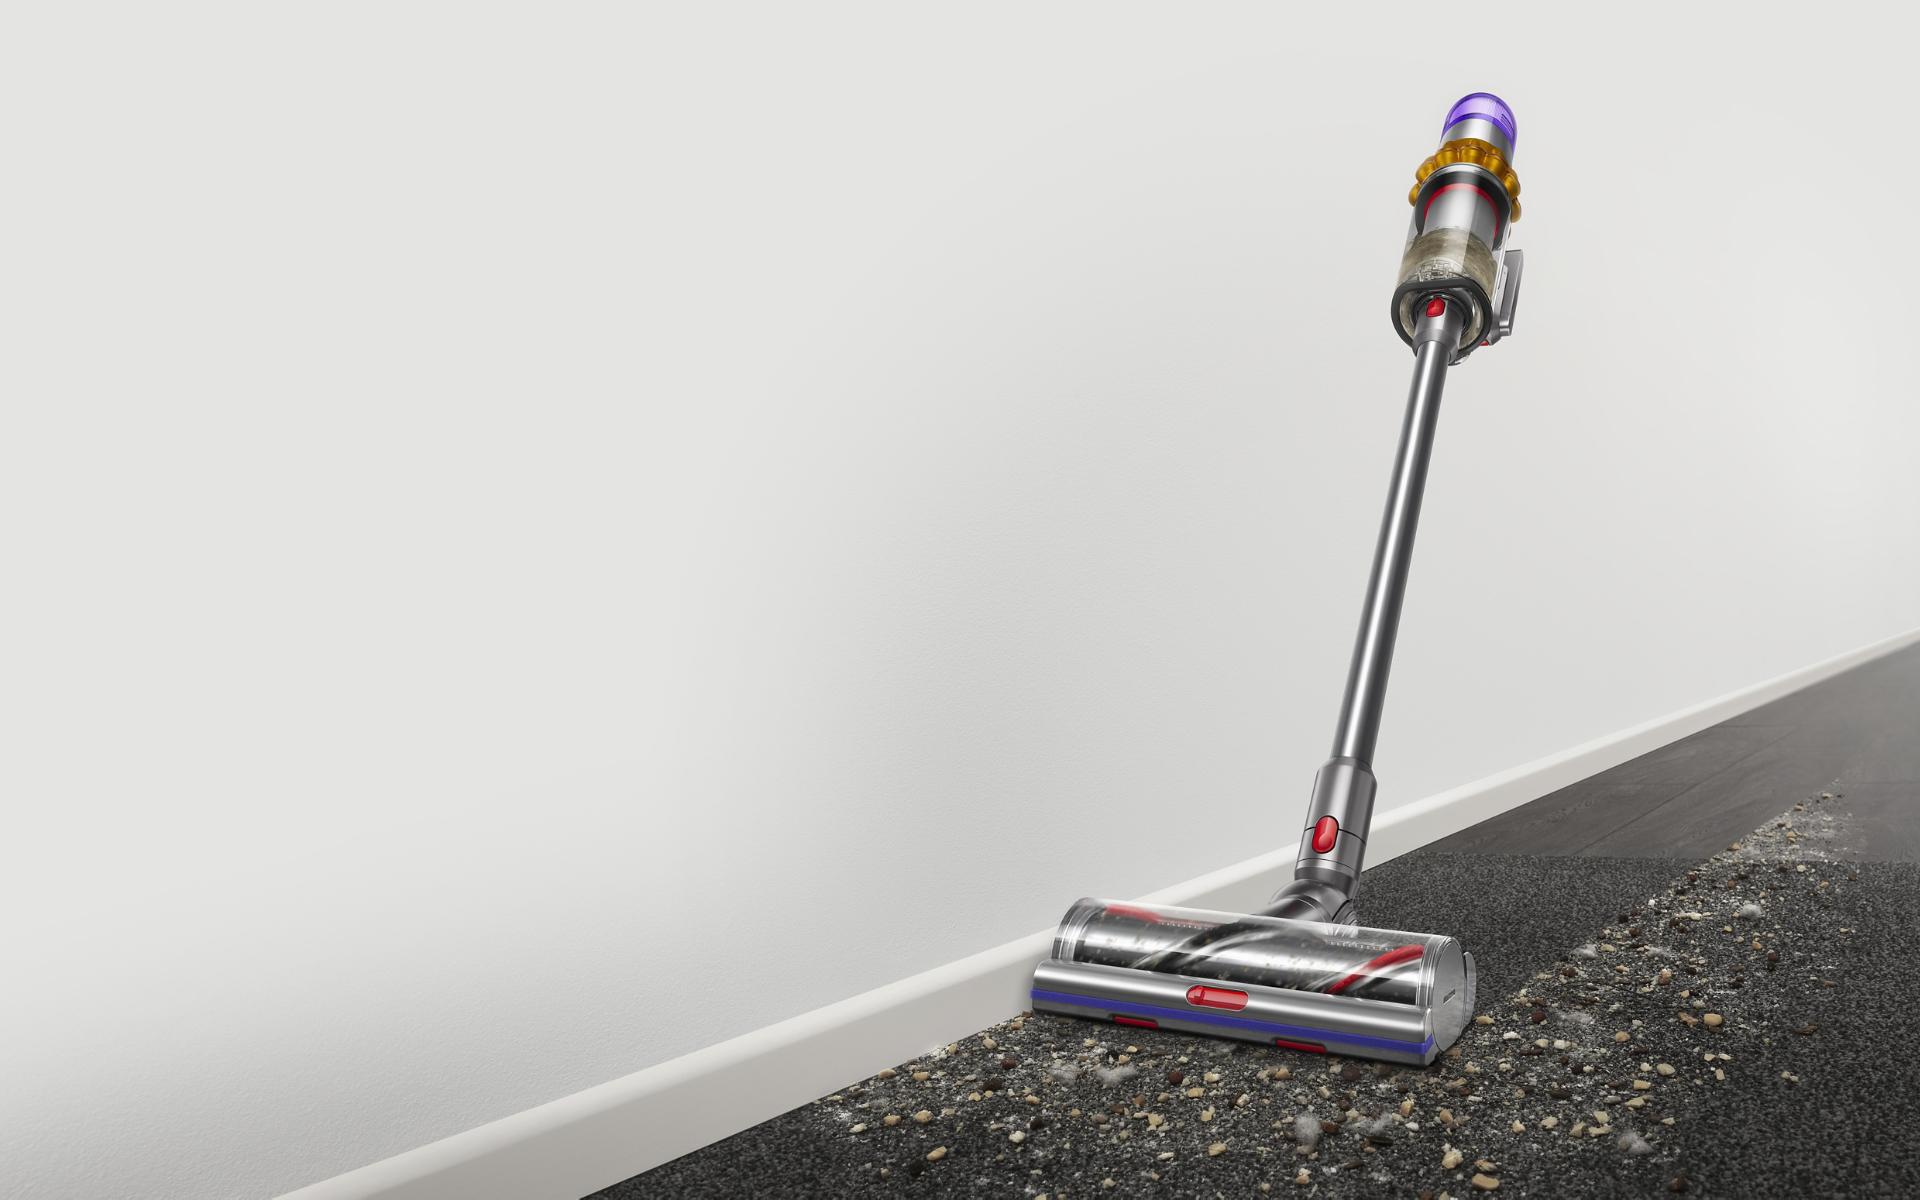 High Torque cleaner head with anti-tangle technology cleaning between hard floor and carpet